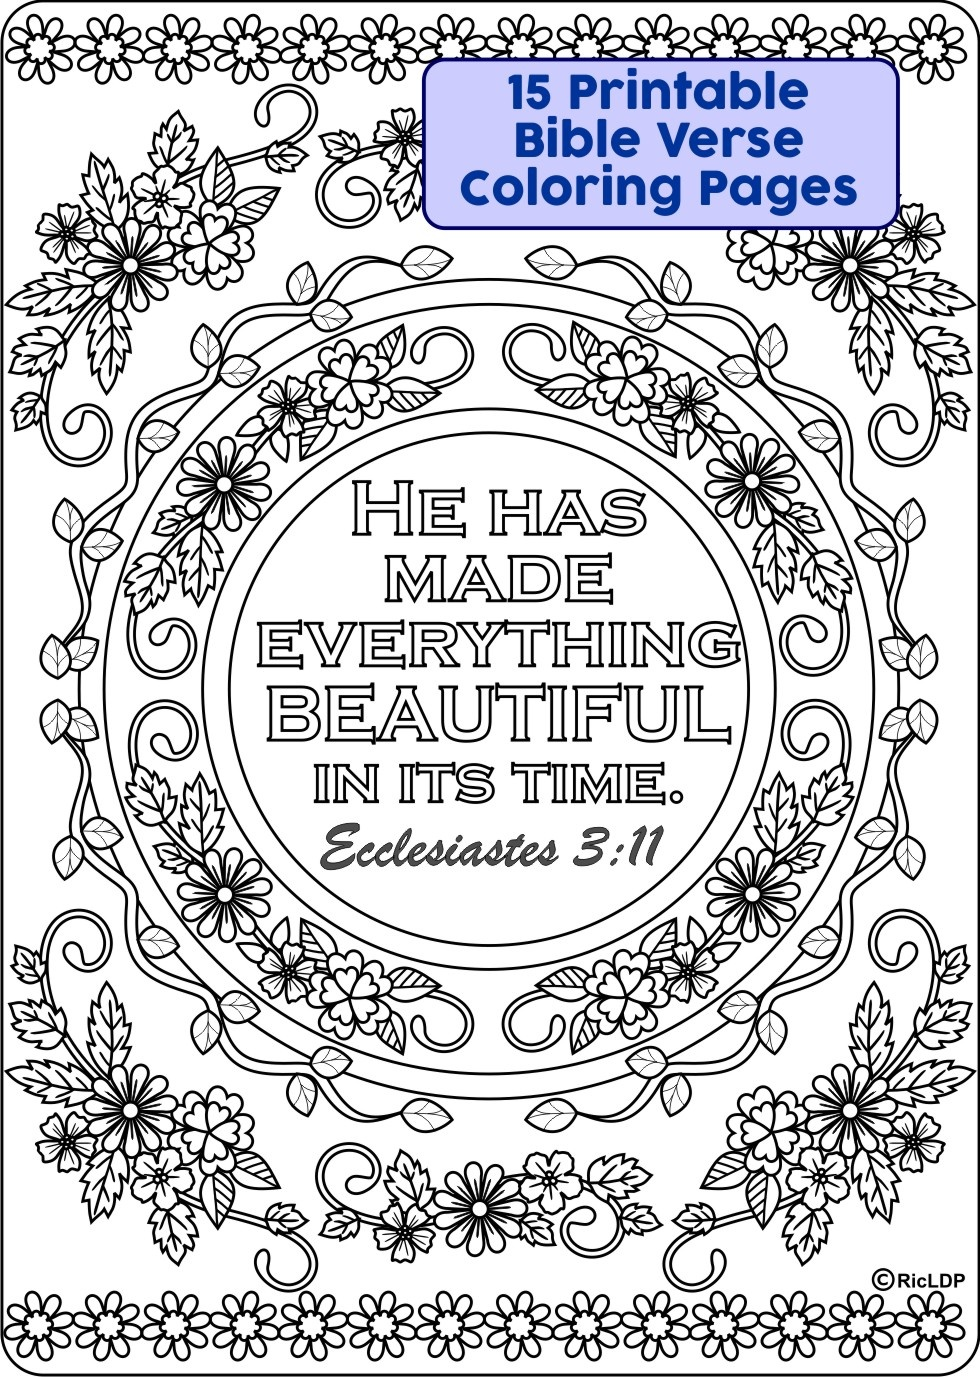 photo about Printable Bible Verse Coloring Pages known as 15 Bible Verses Coloring Internet pages